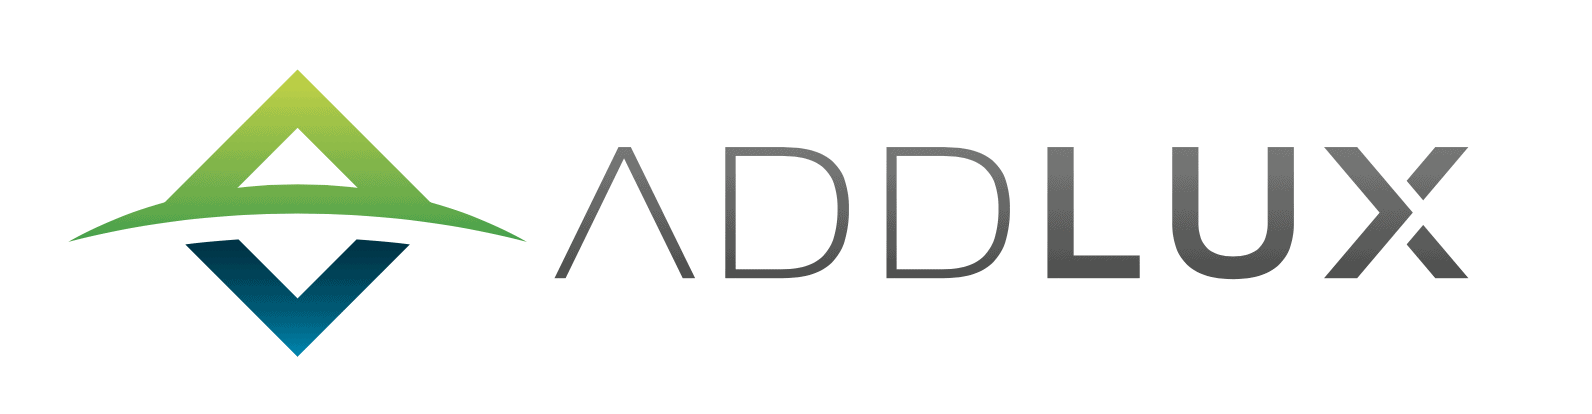 Addlux Limited Logo